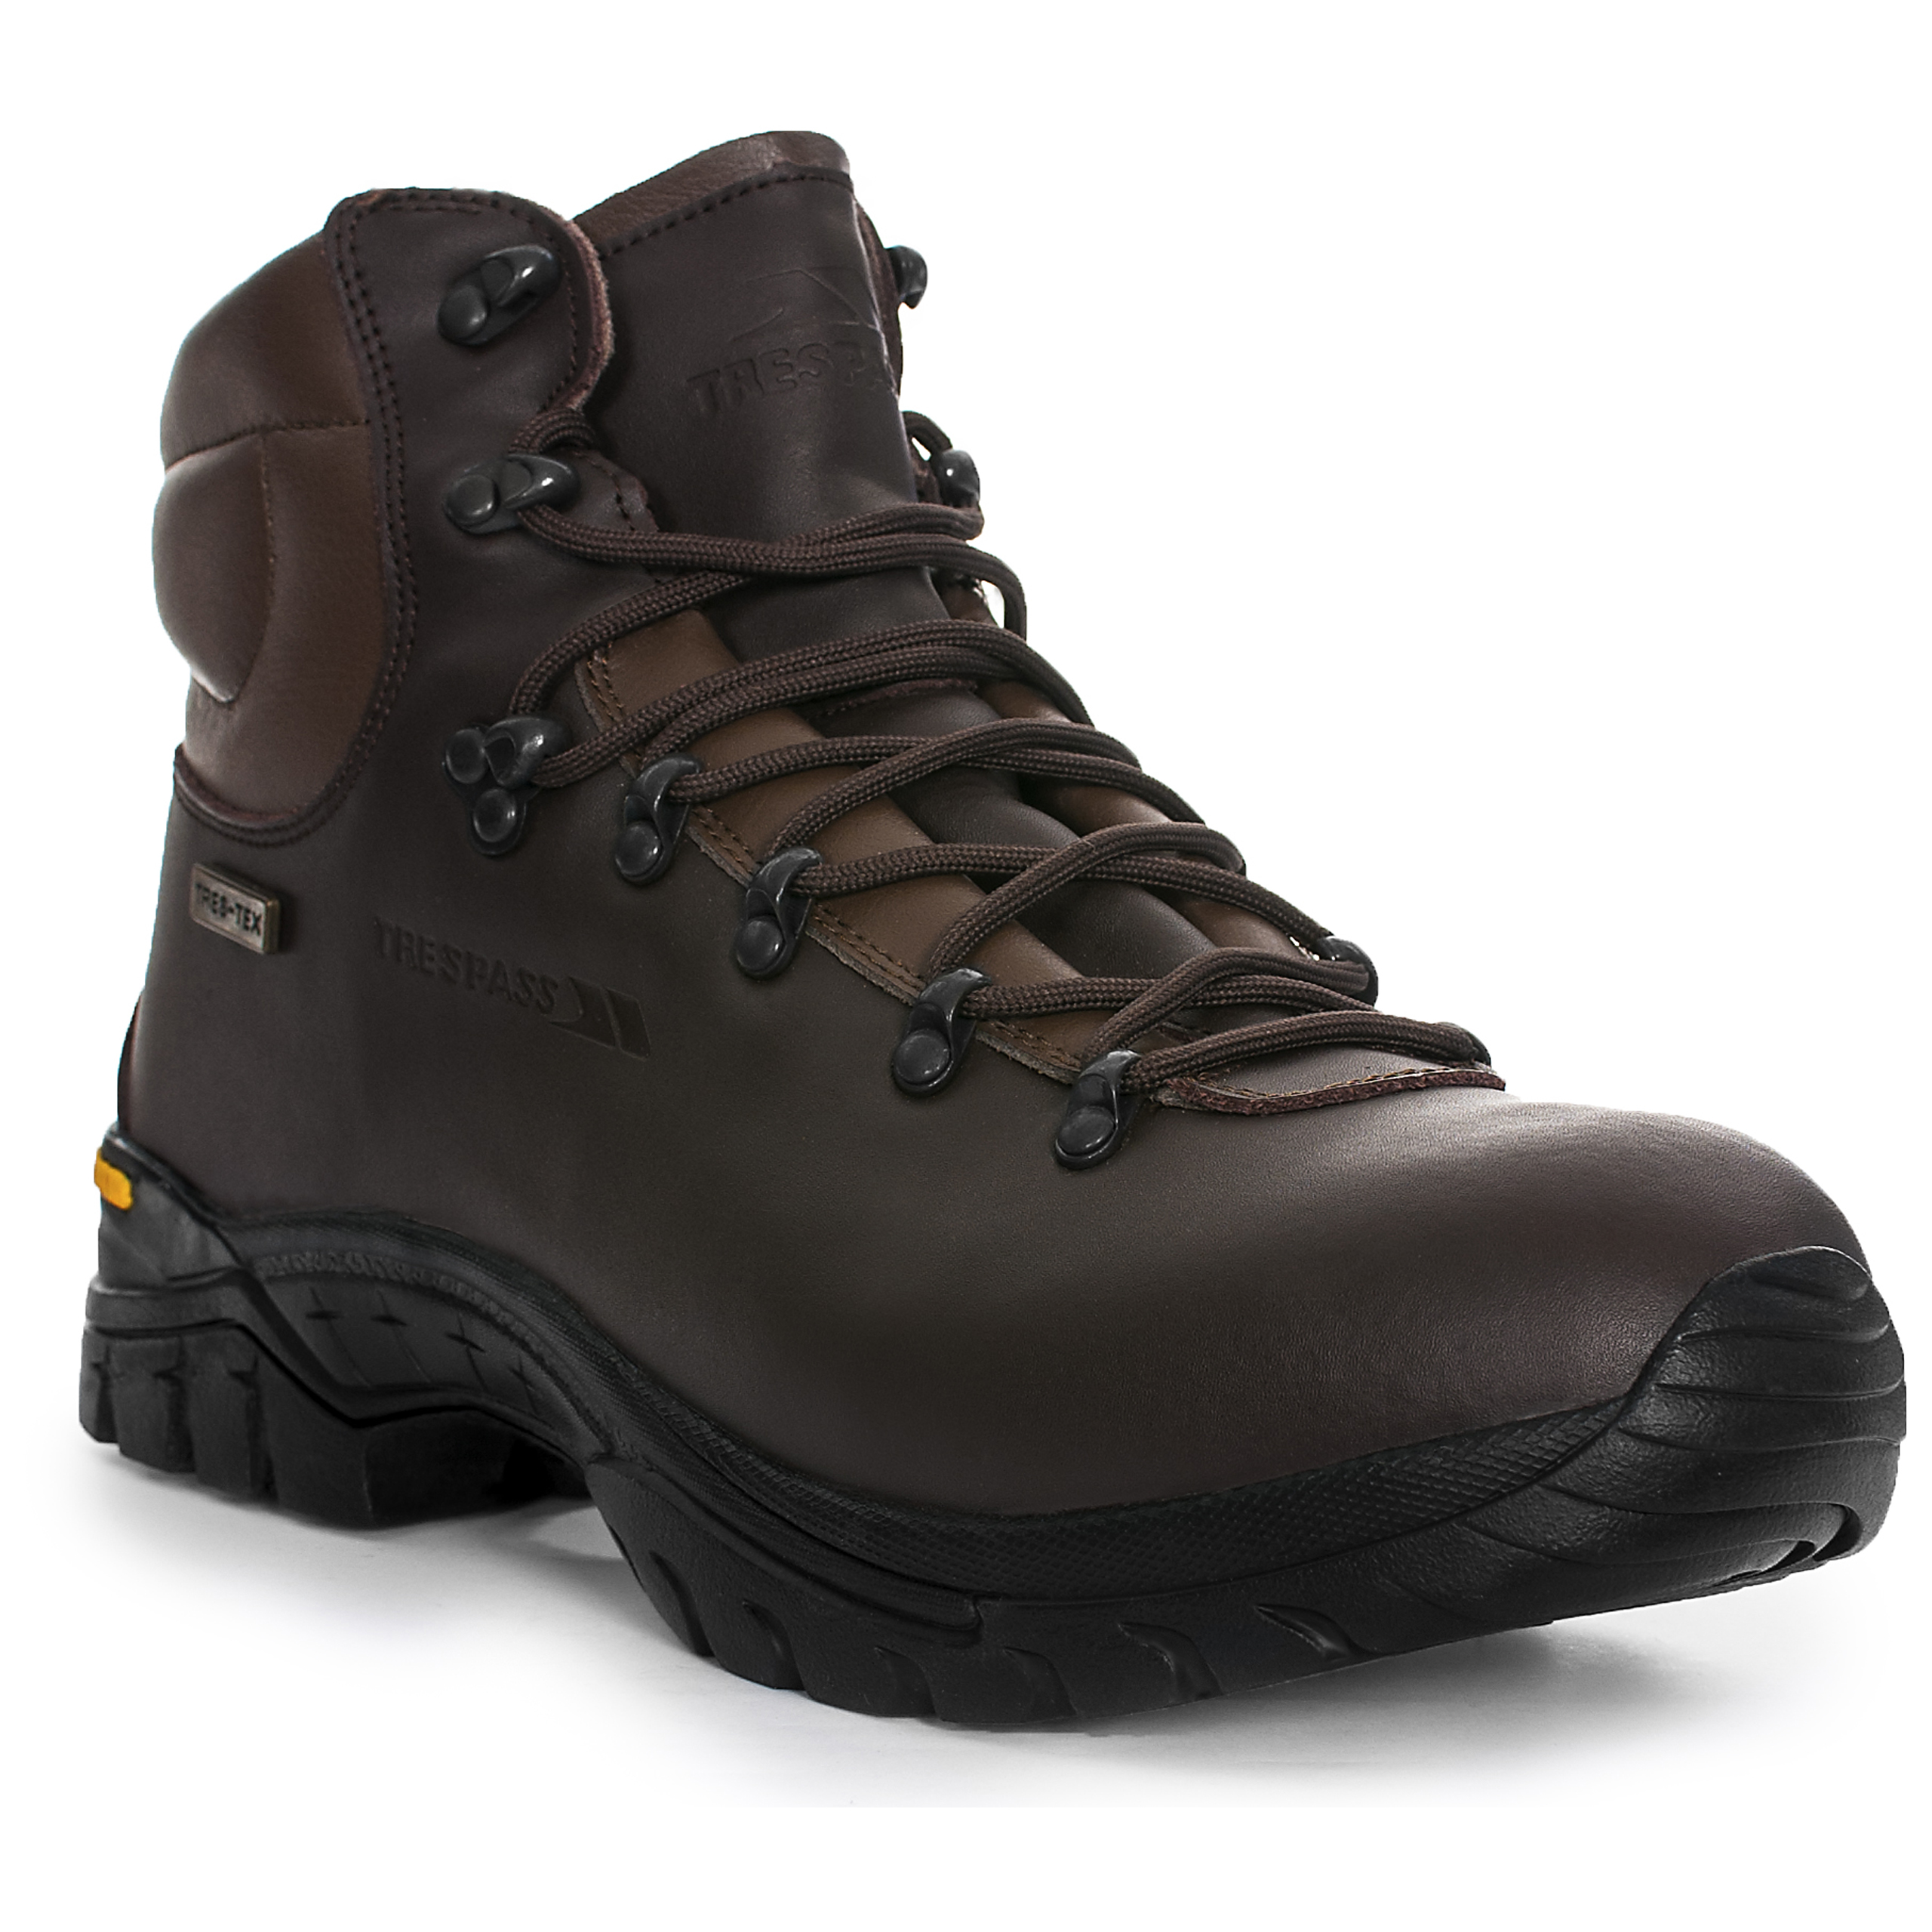 Trespass  Walker Youths Leather Boots Boys Girls Breathable Walking Hiking Shoes